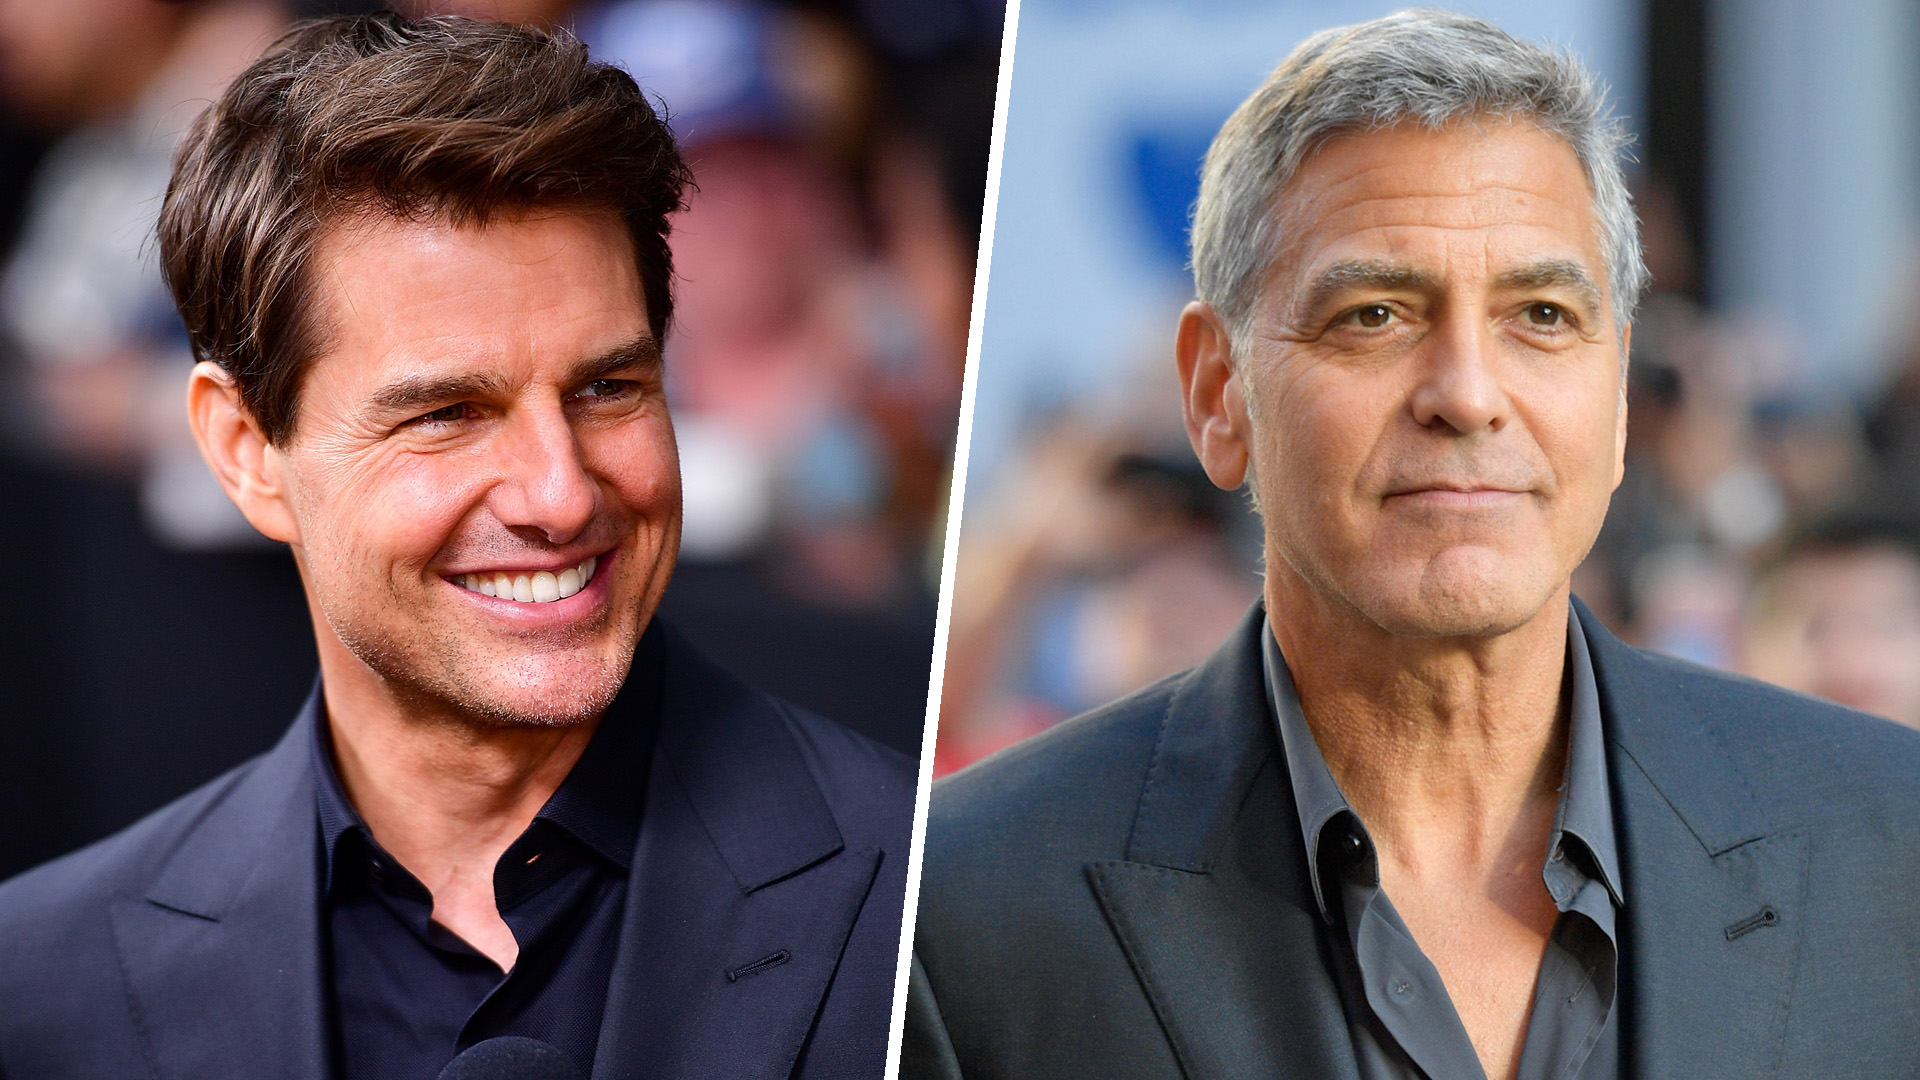 Tom Cruise offers advice to George Clooney following scooter crash 1920x1080